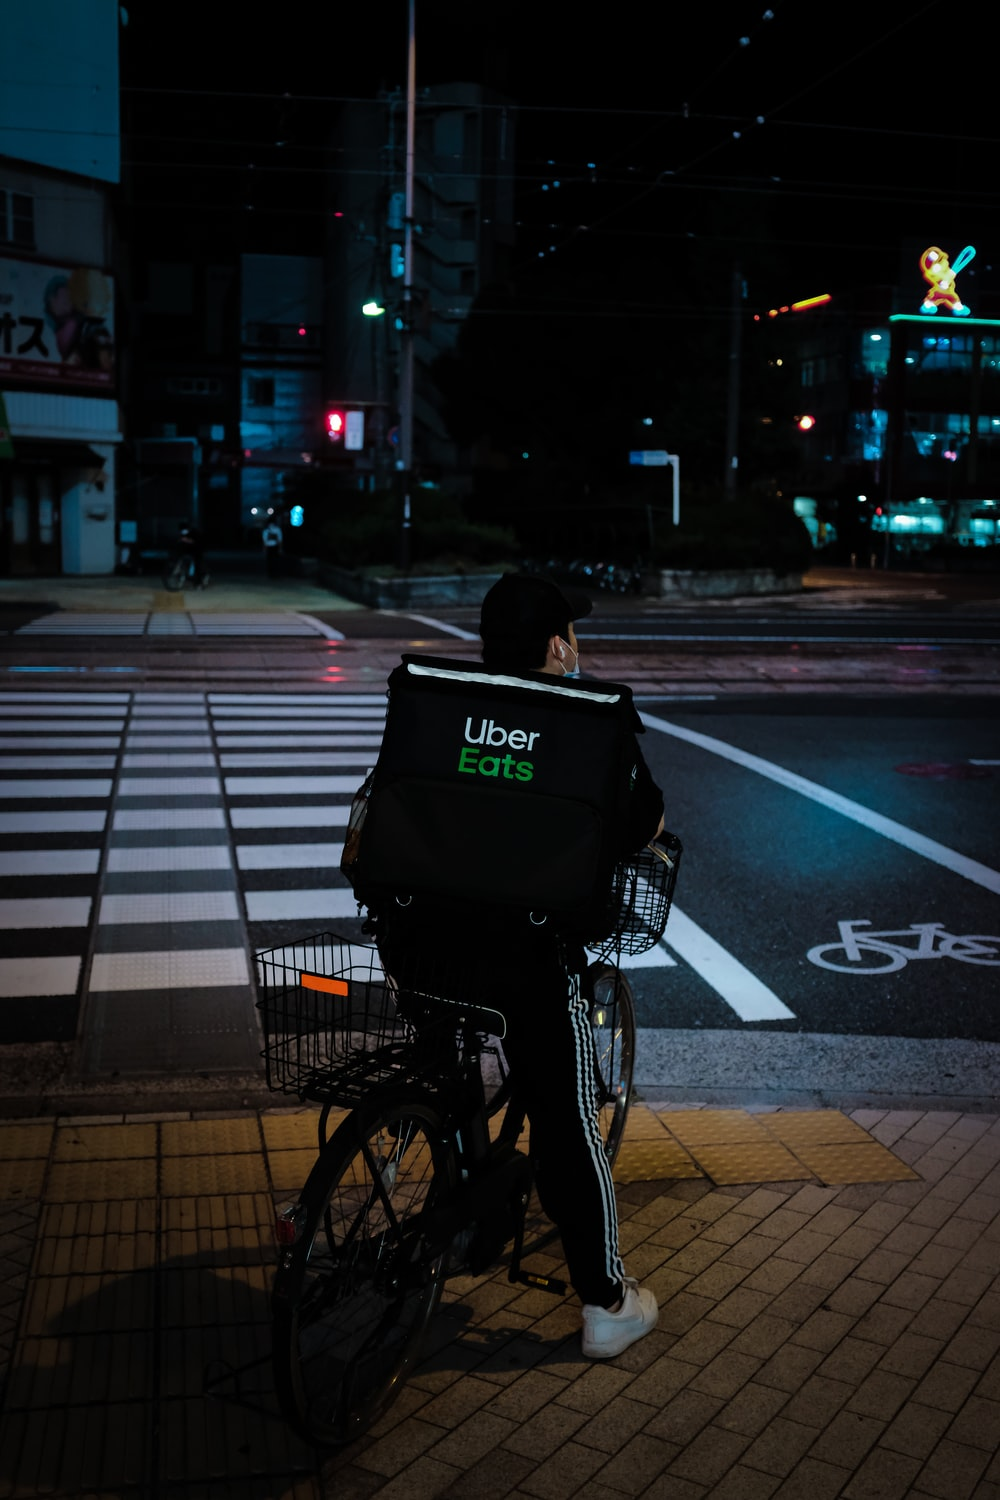 woman in black jacket riding bicycle on pedestrian lane during night time